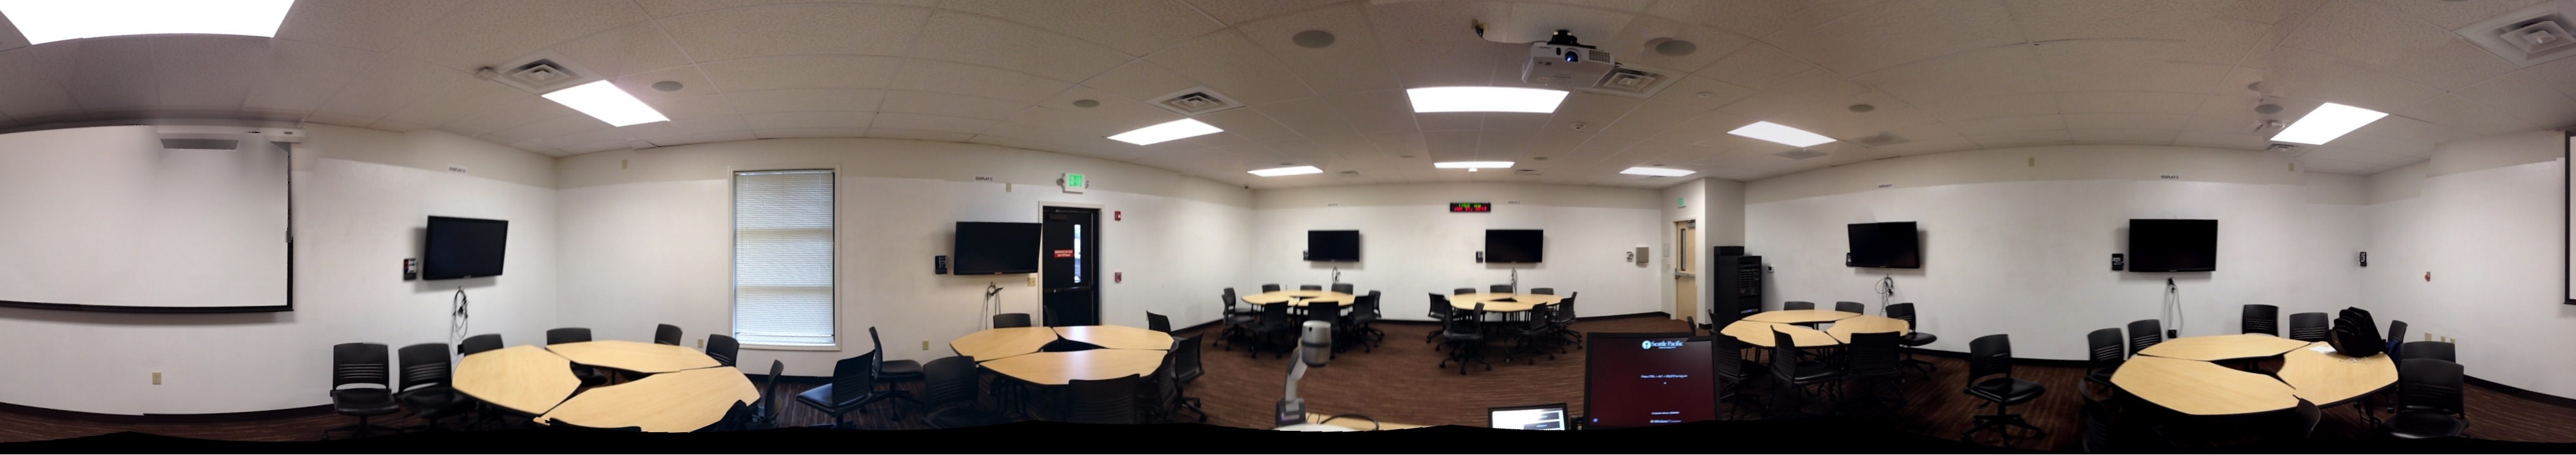 Panoramic View of Cremona 101 Active Learning Space Classroom